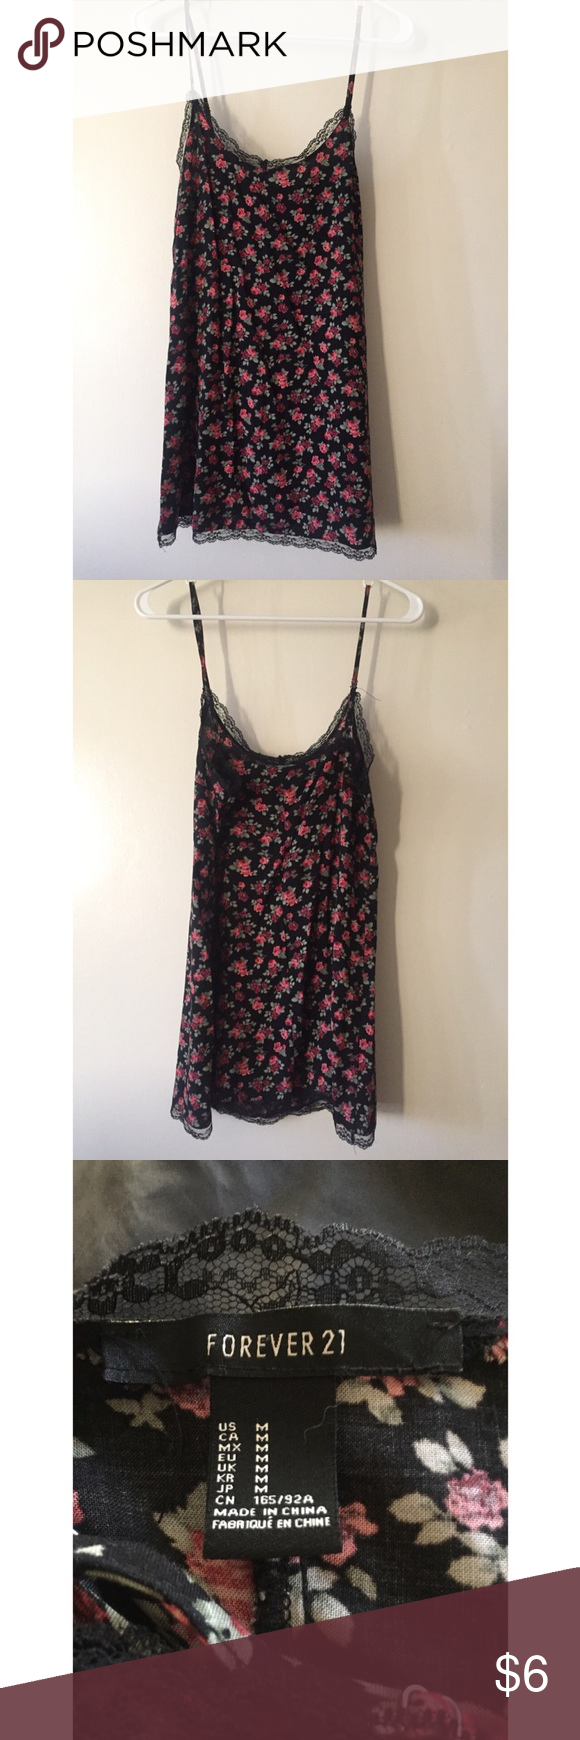 90s inspired floral dress only worn once! it's very 90s inspired because of how tight fitting it sits on the body but is still loose (not bodycon). black lace trimming on the top. Forever 21 Dresses Mini